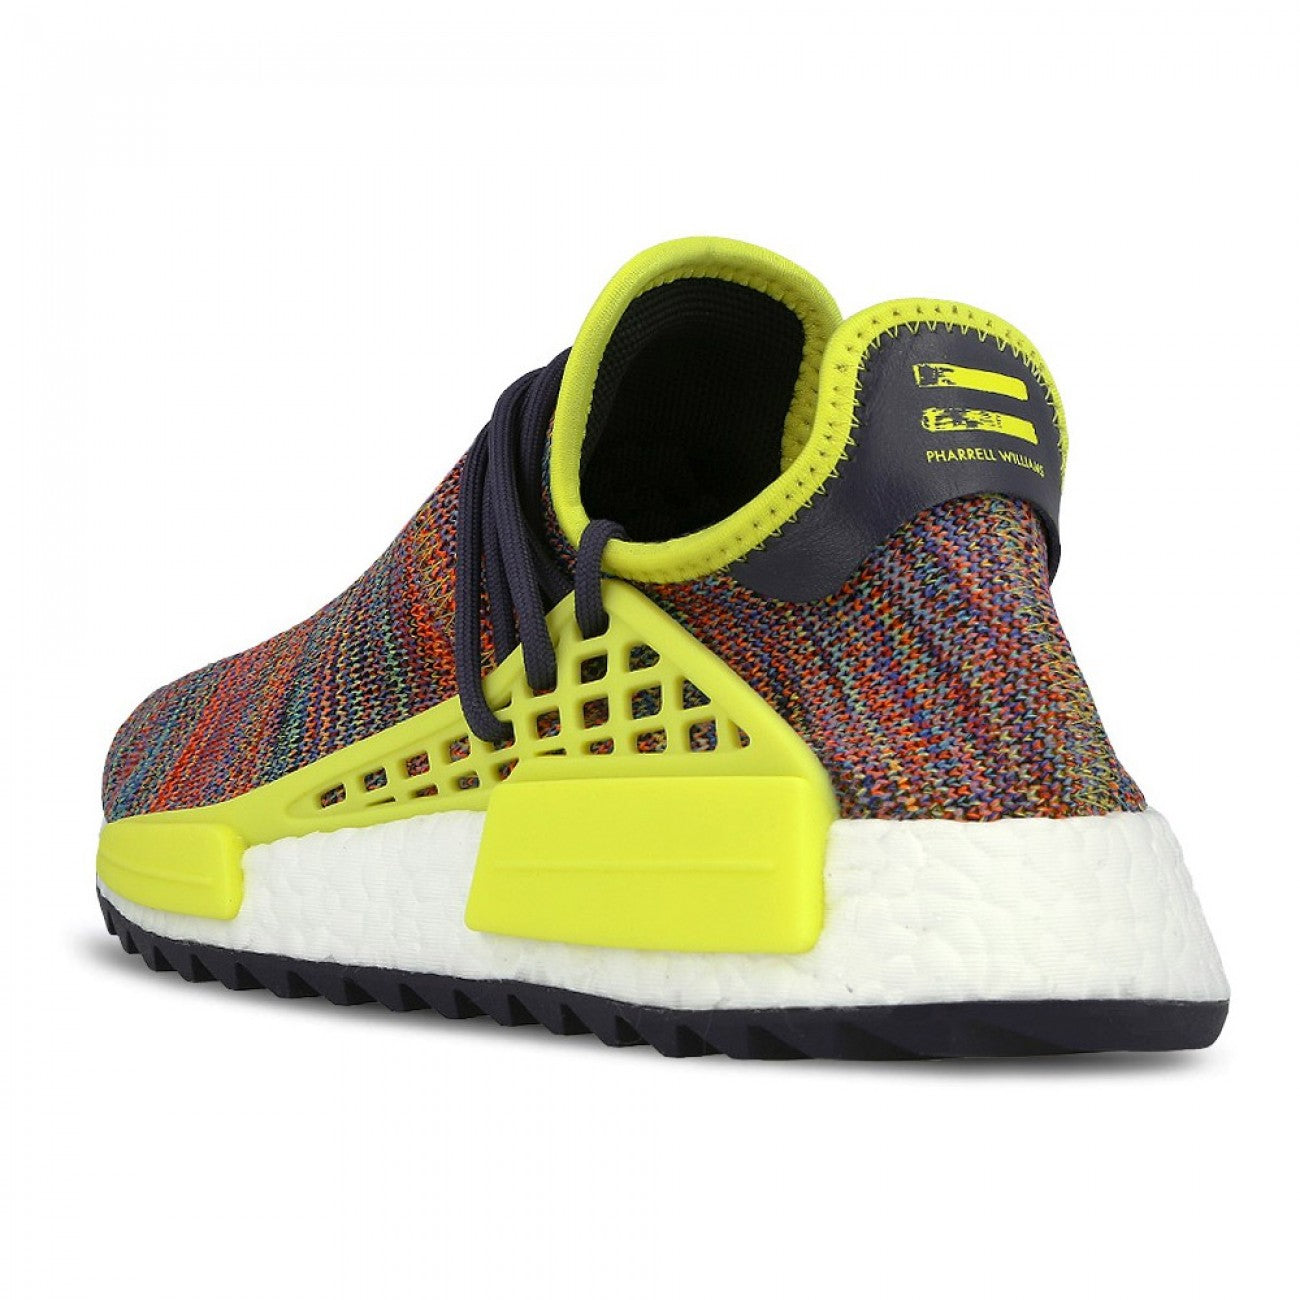 a481c9391 Pharrell x adidas NMD Hu Trail Noble Ink Bold Yellow-Footwear White ...